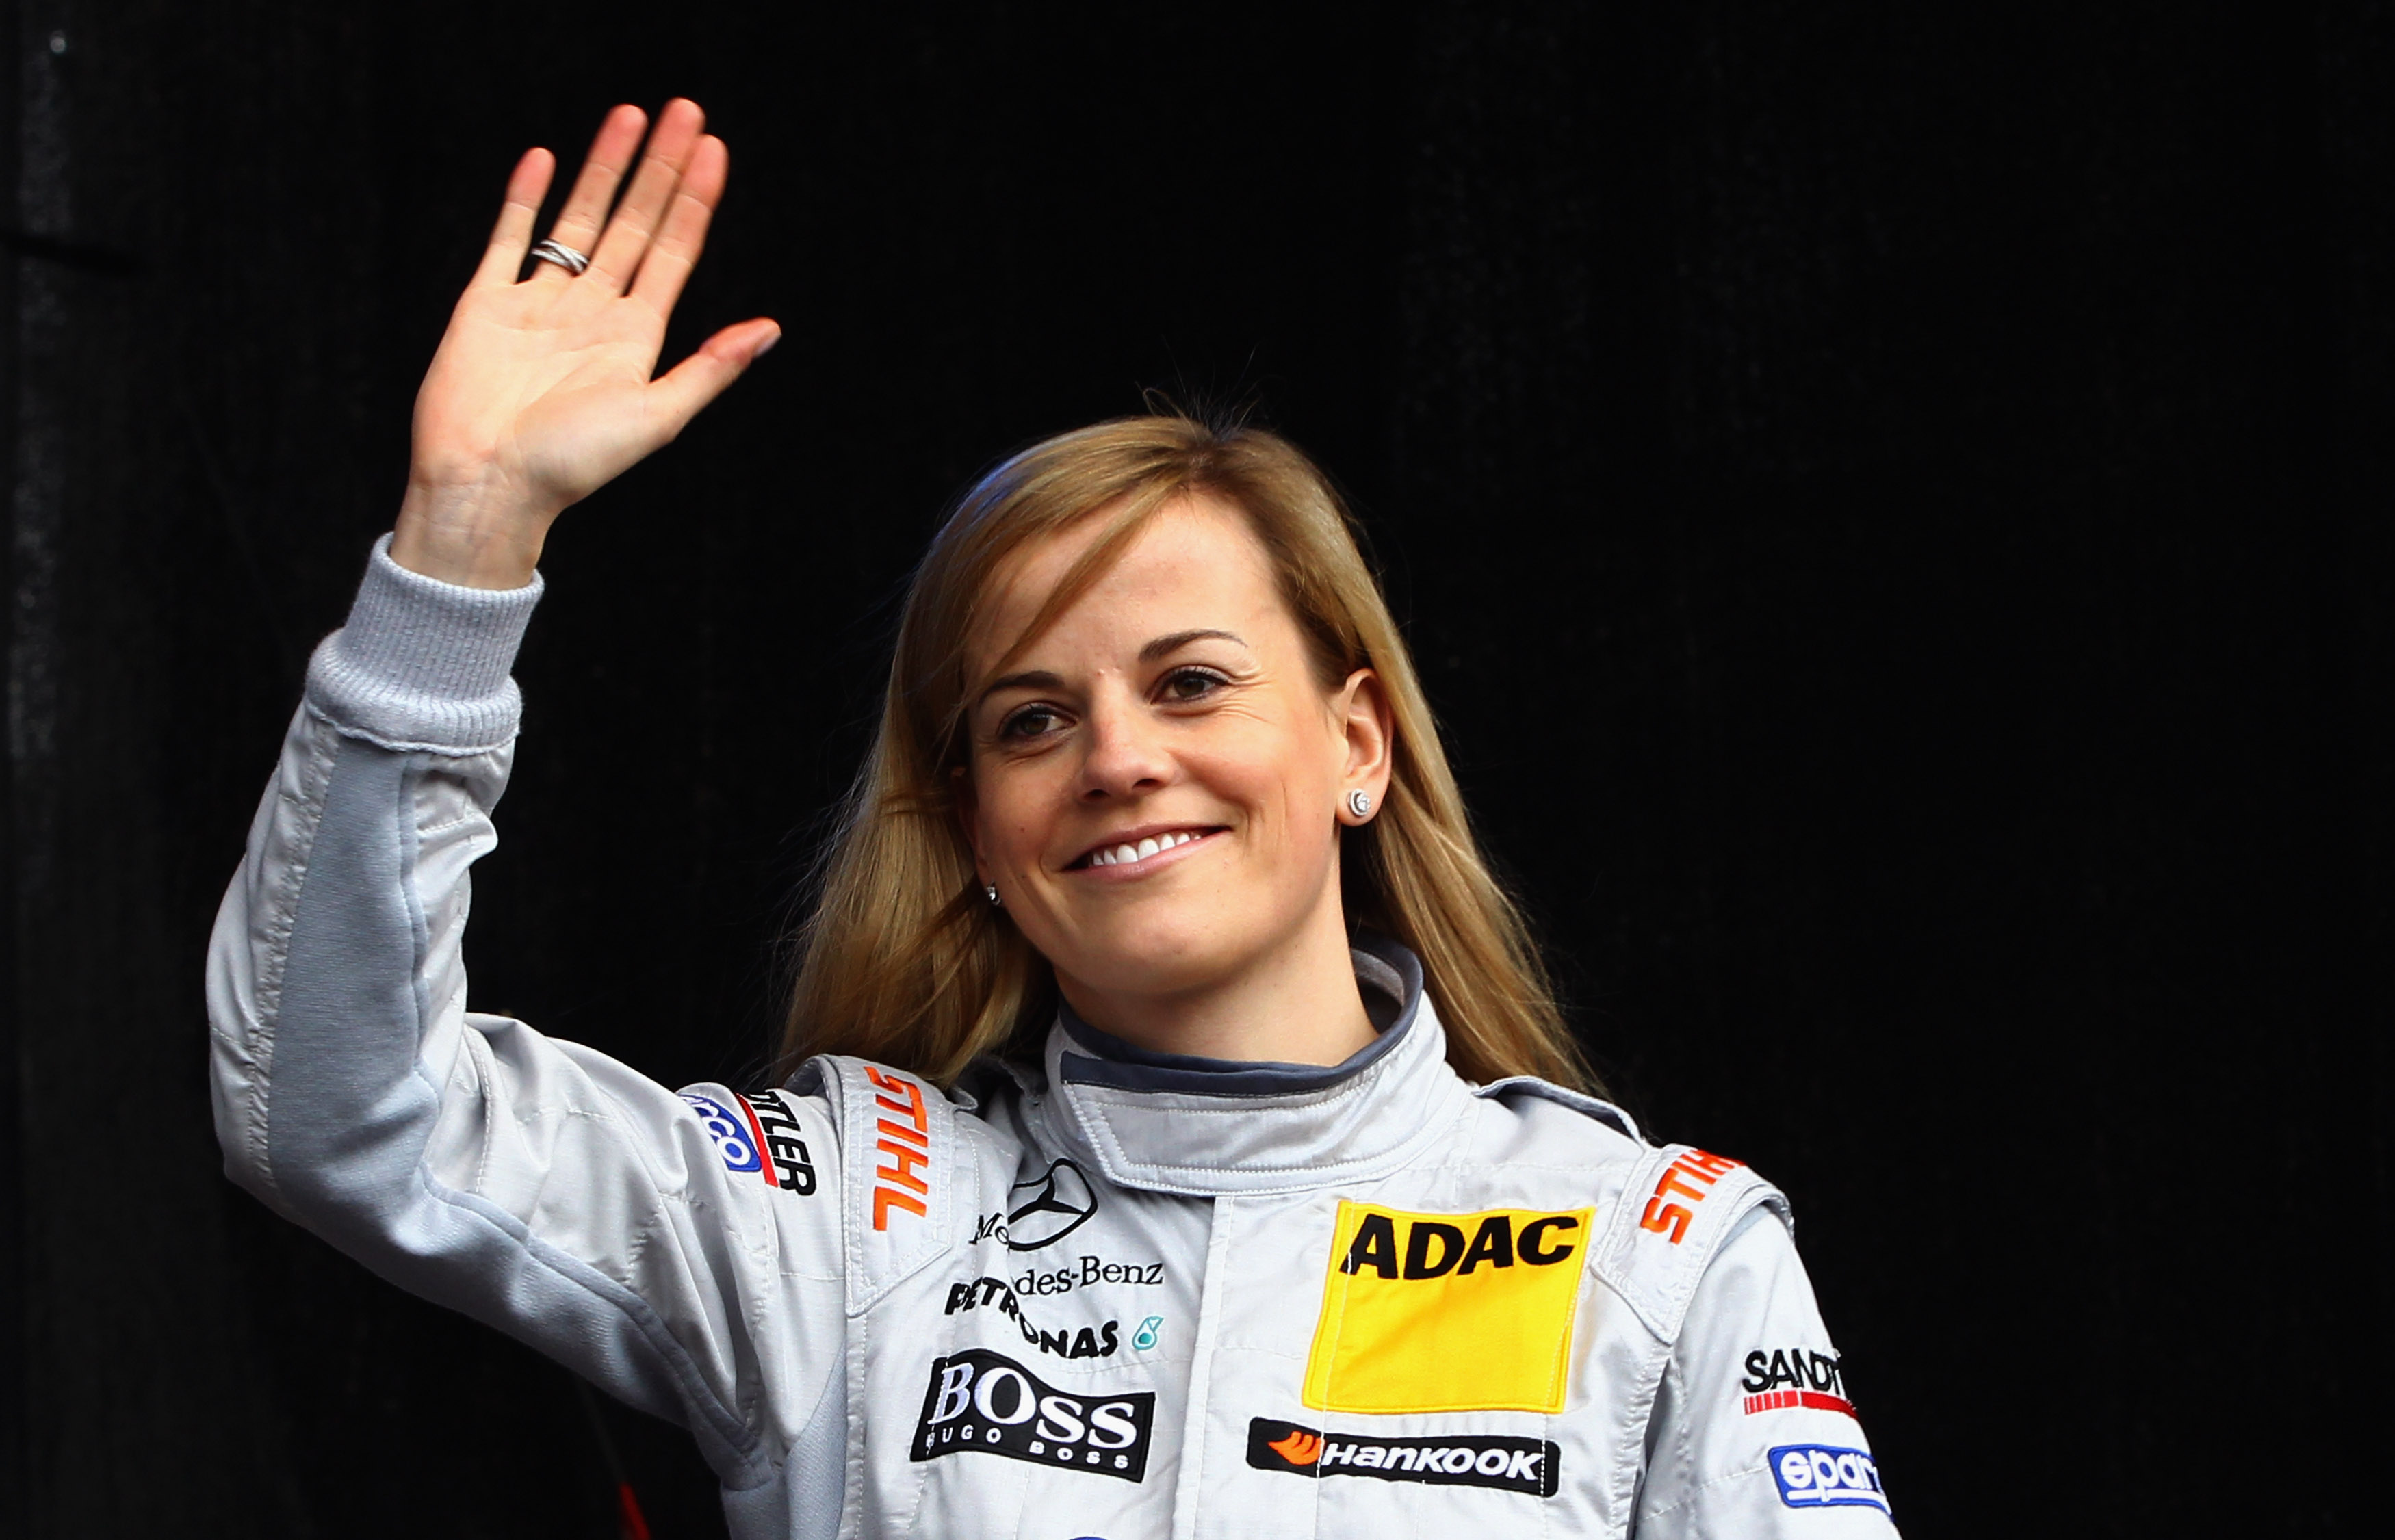 British Mercedes driver Susie Wolff waves during the DTM touring car presentation on April 22, 2012 in Wiesbaden, Germany.